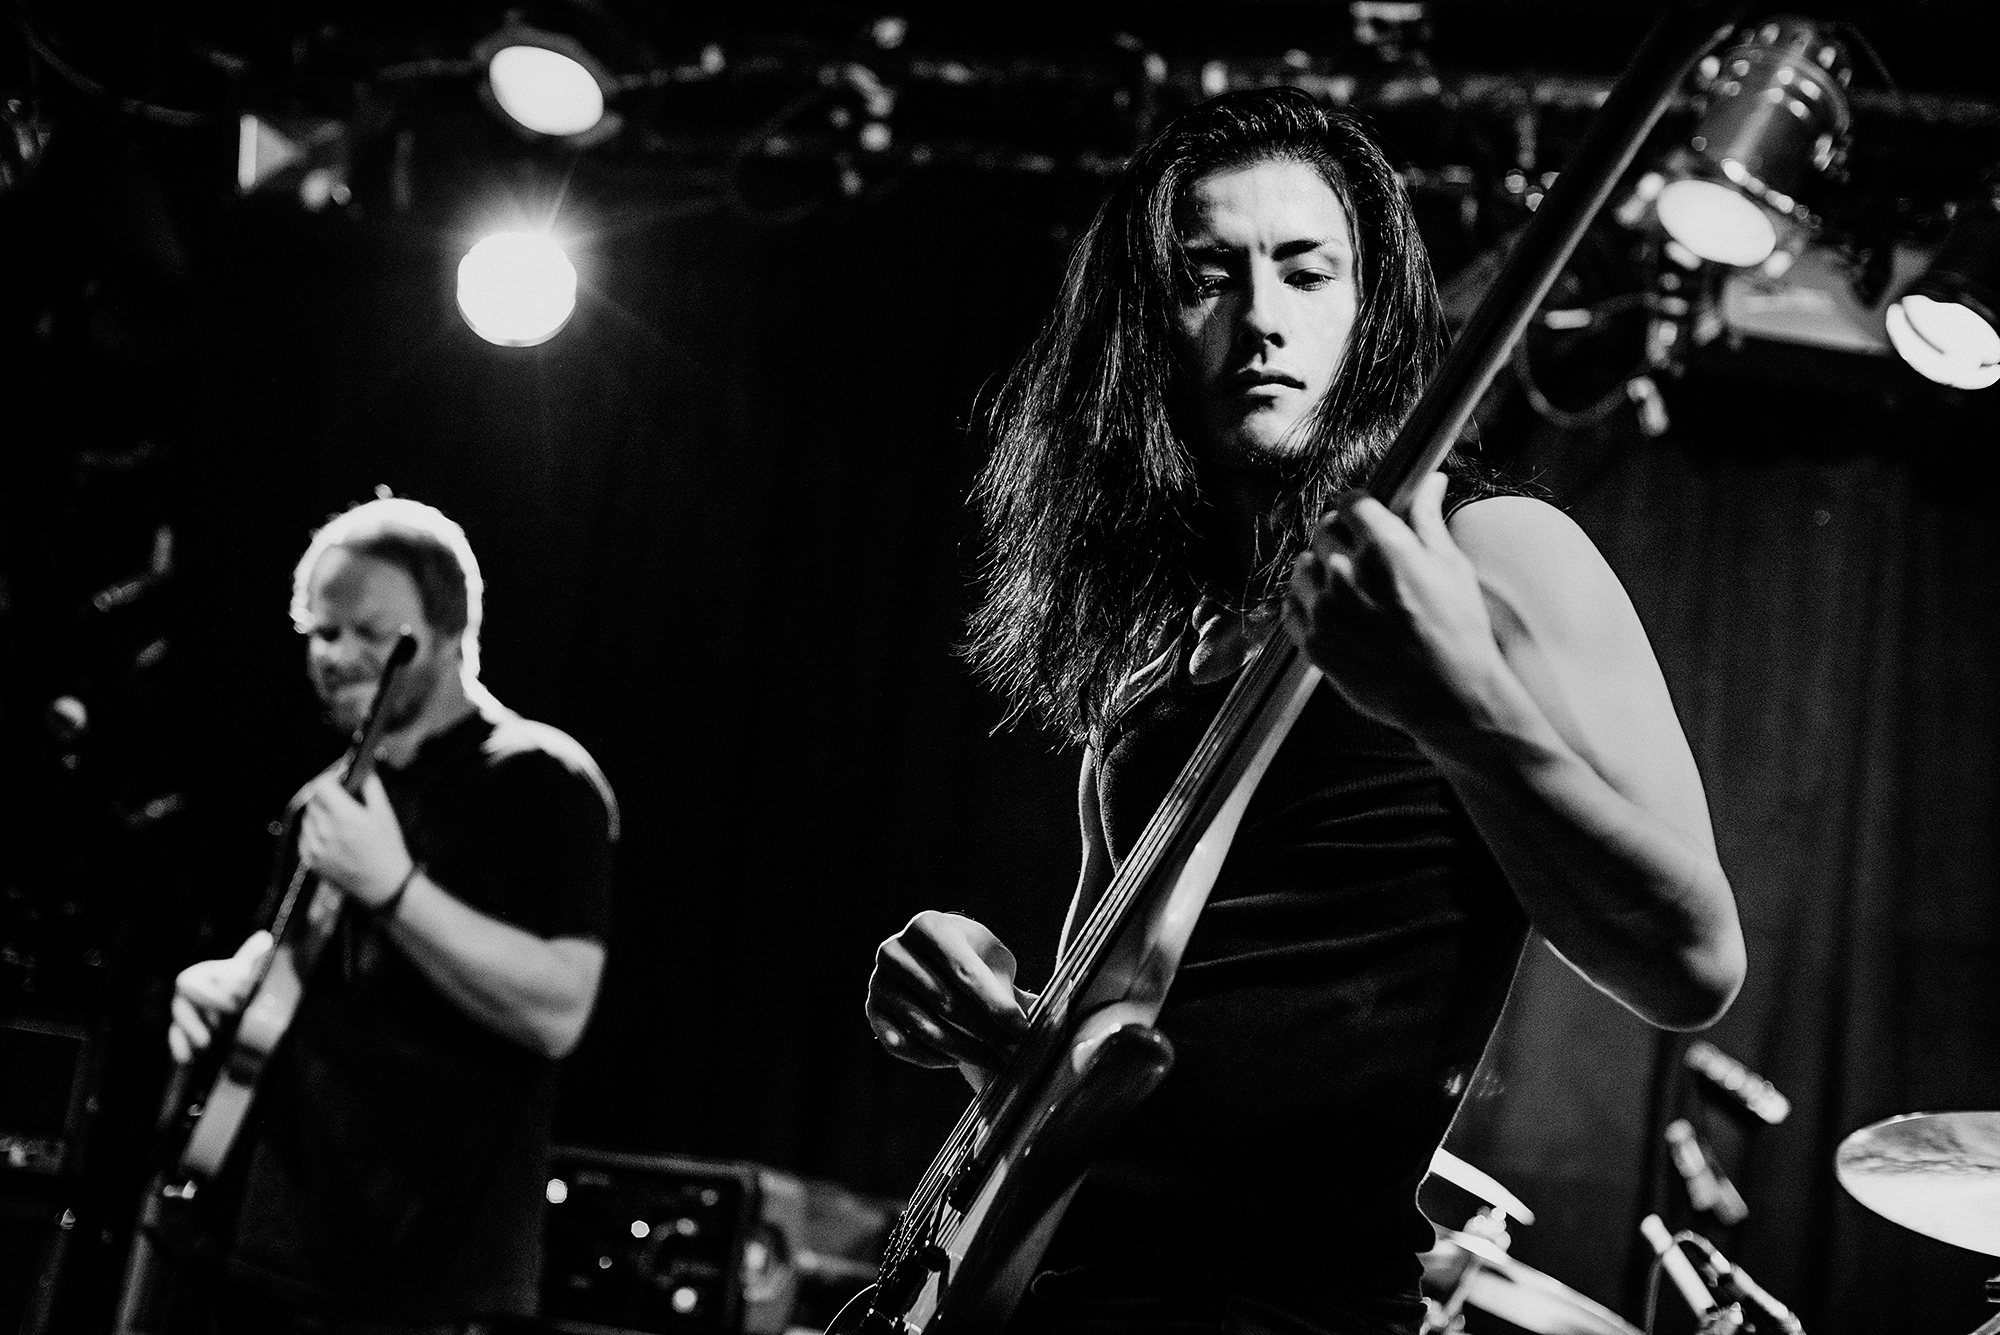 Thrailkill at the Viper Room, Los Angeles, CA  2018.06.27